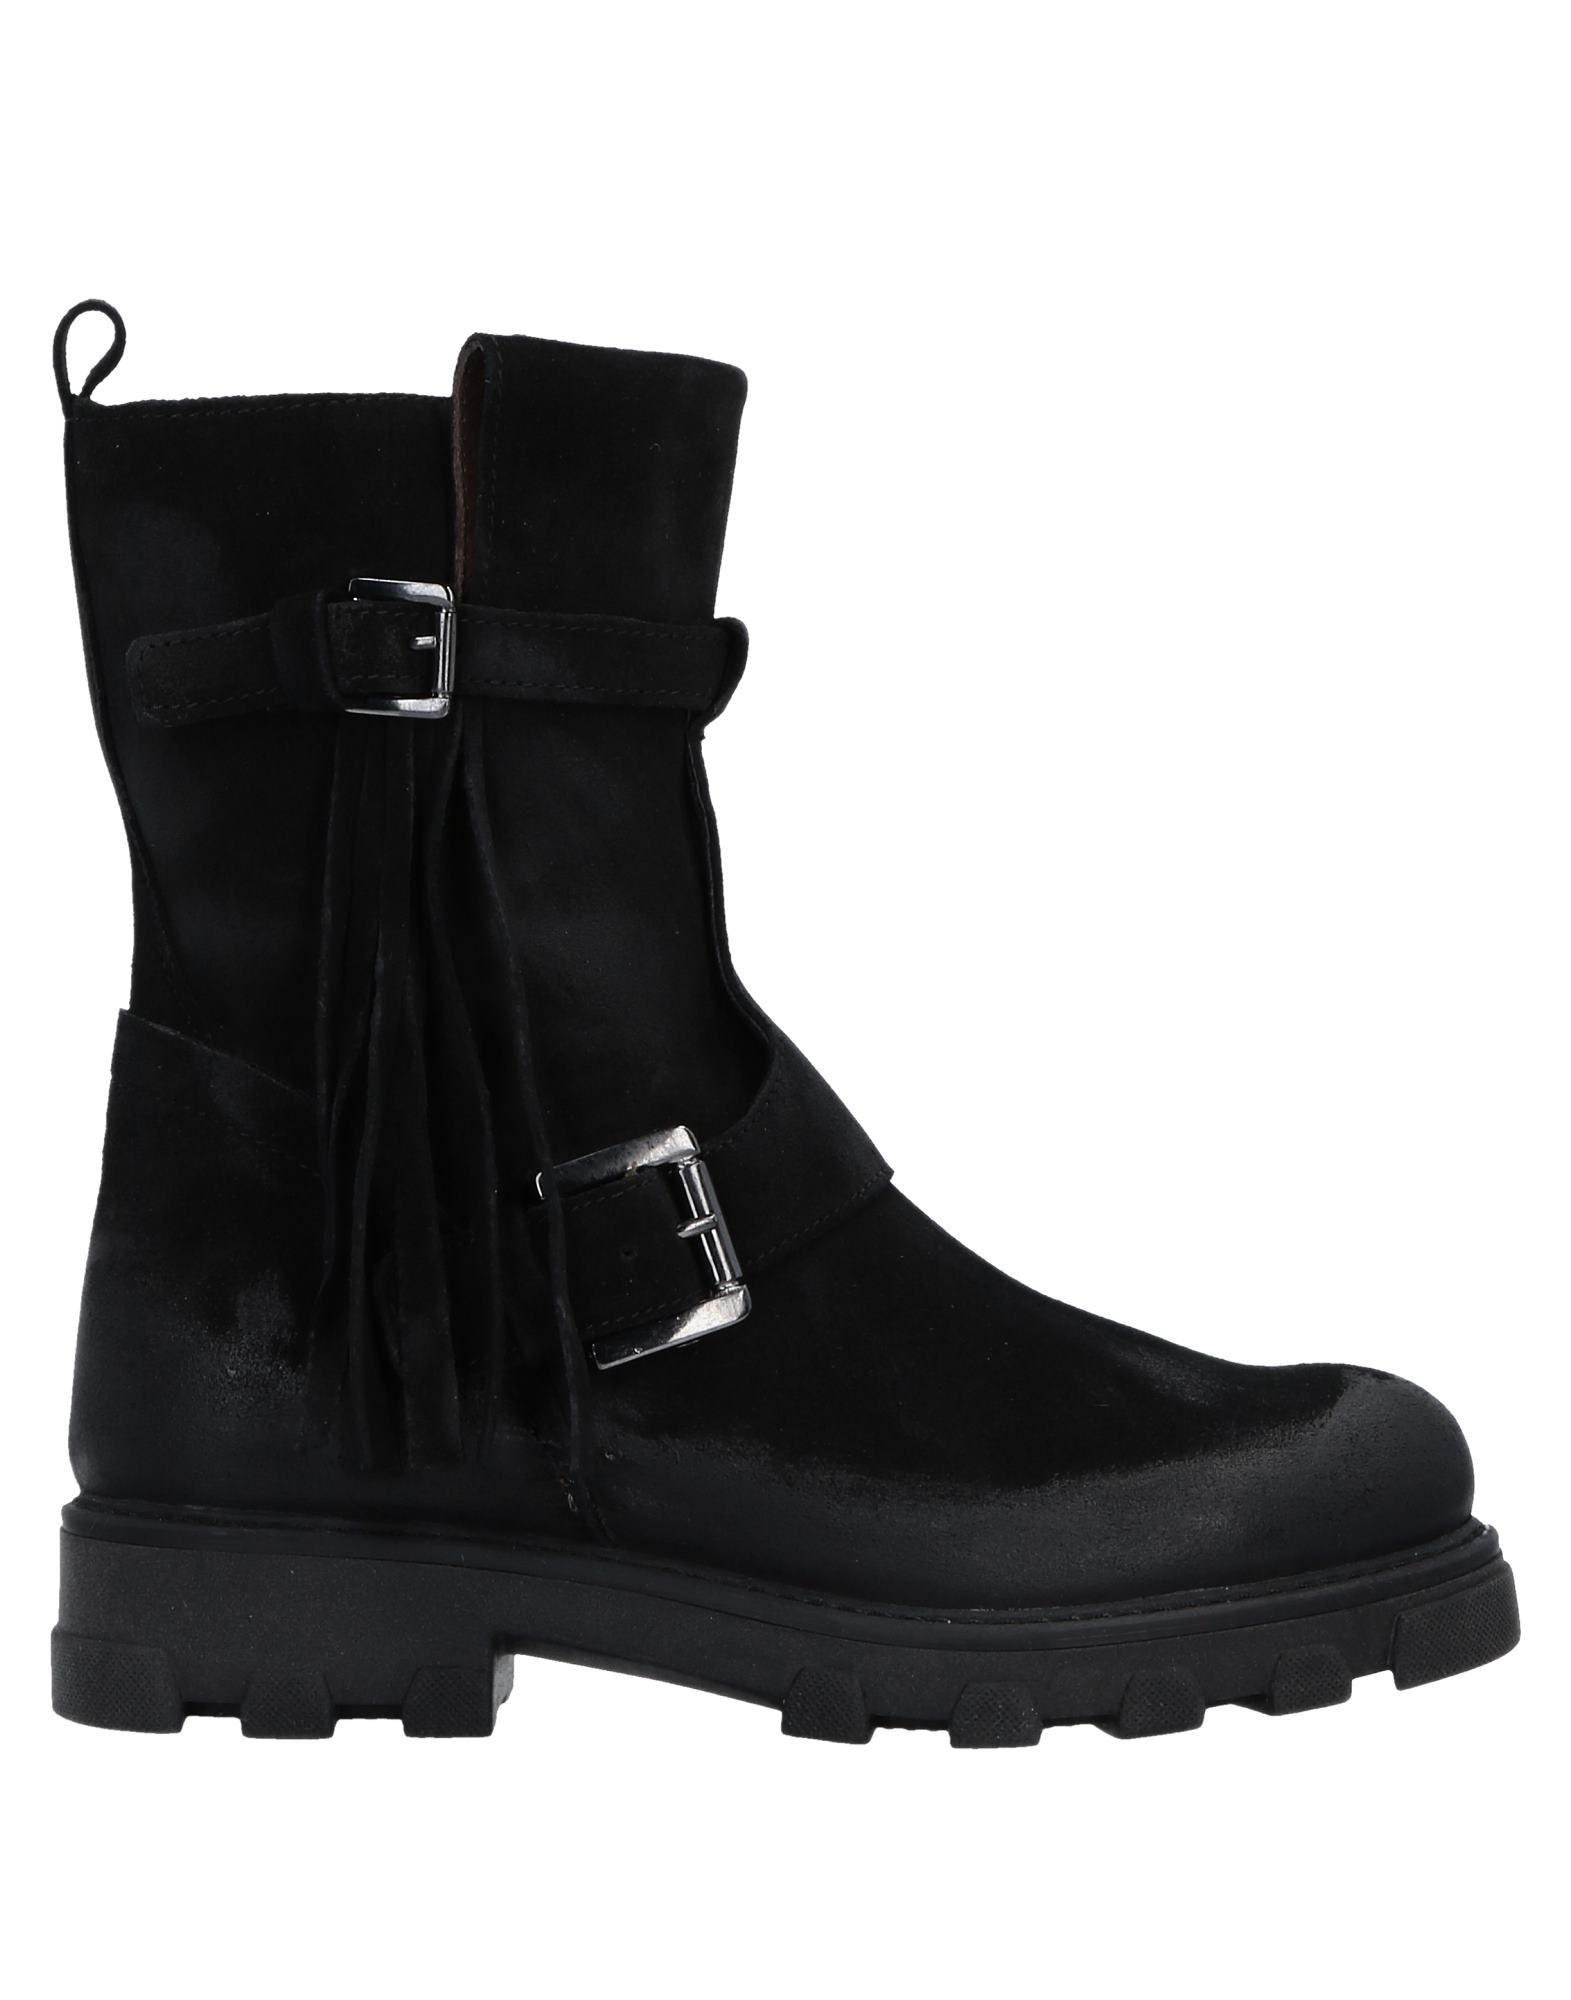 MANAS Ankle Boot in Black